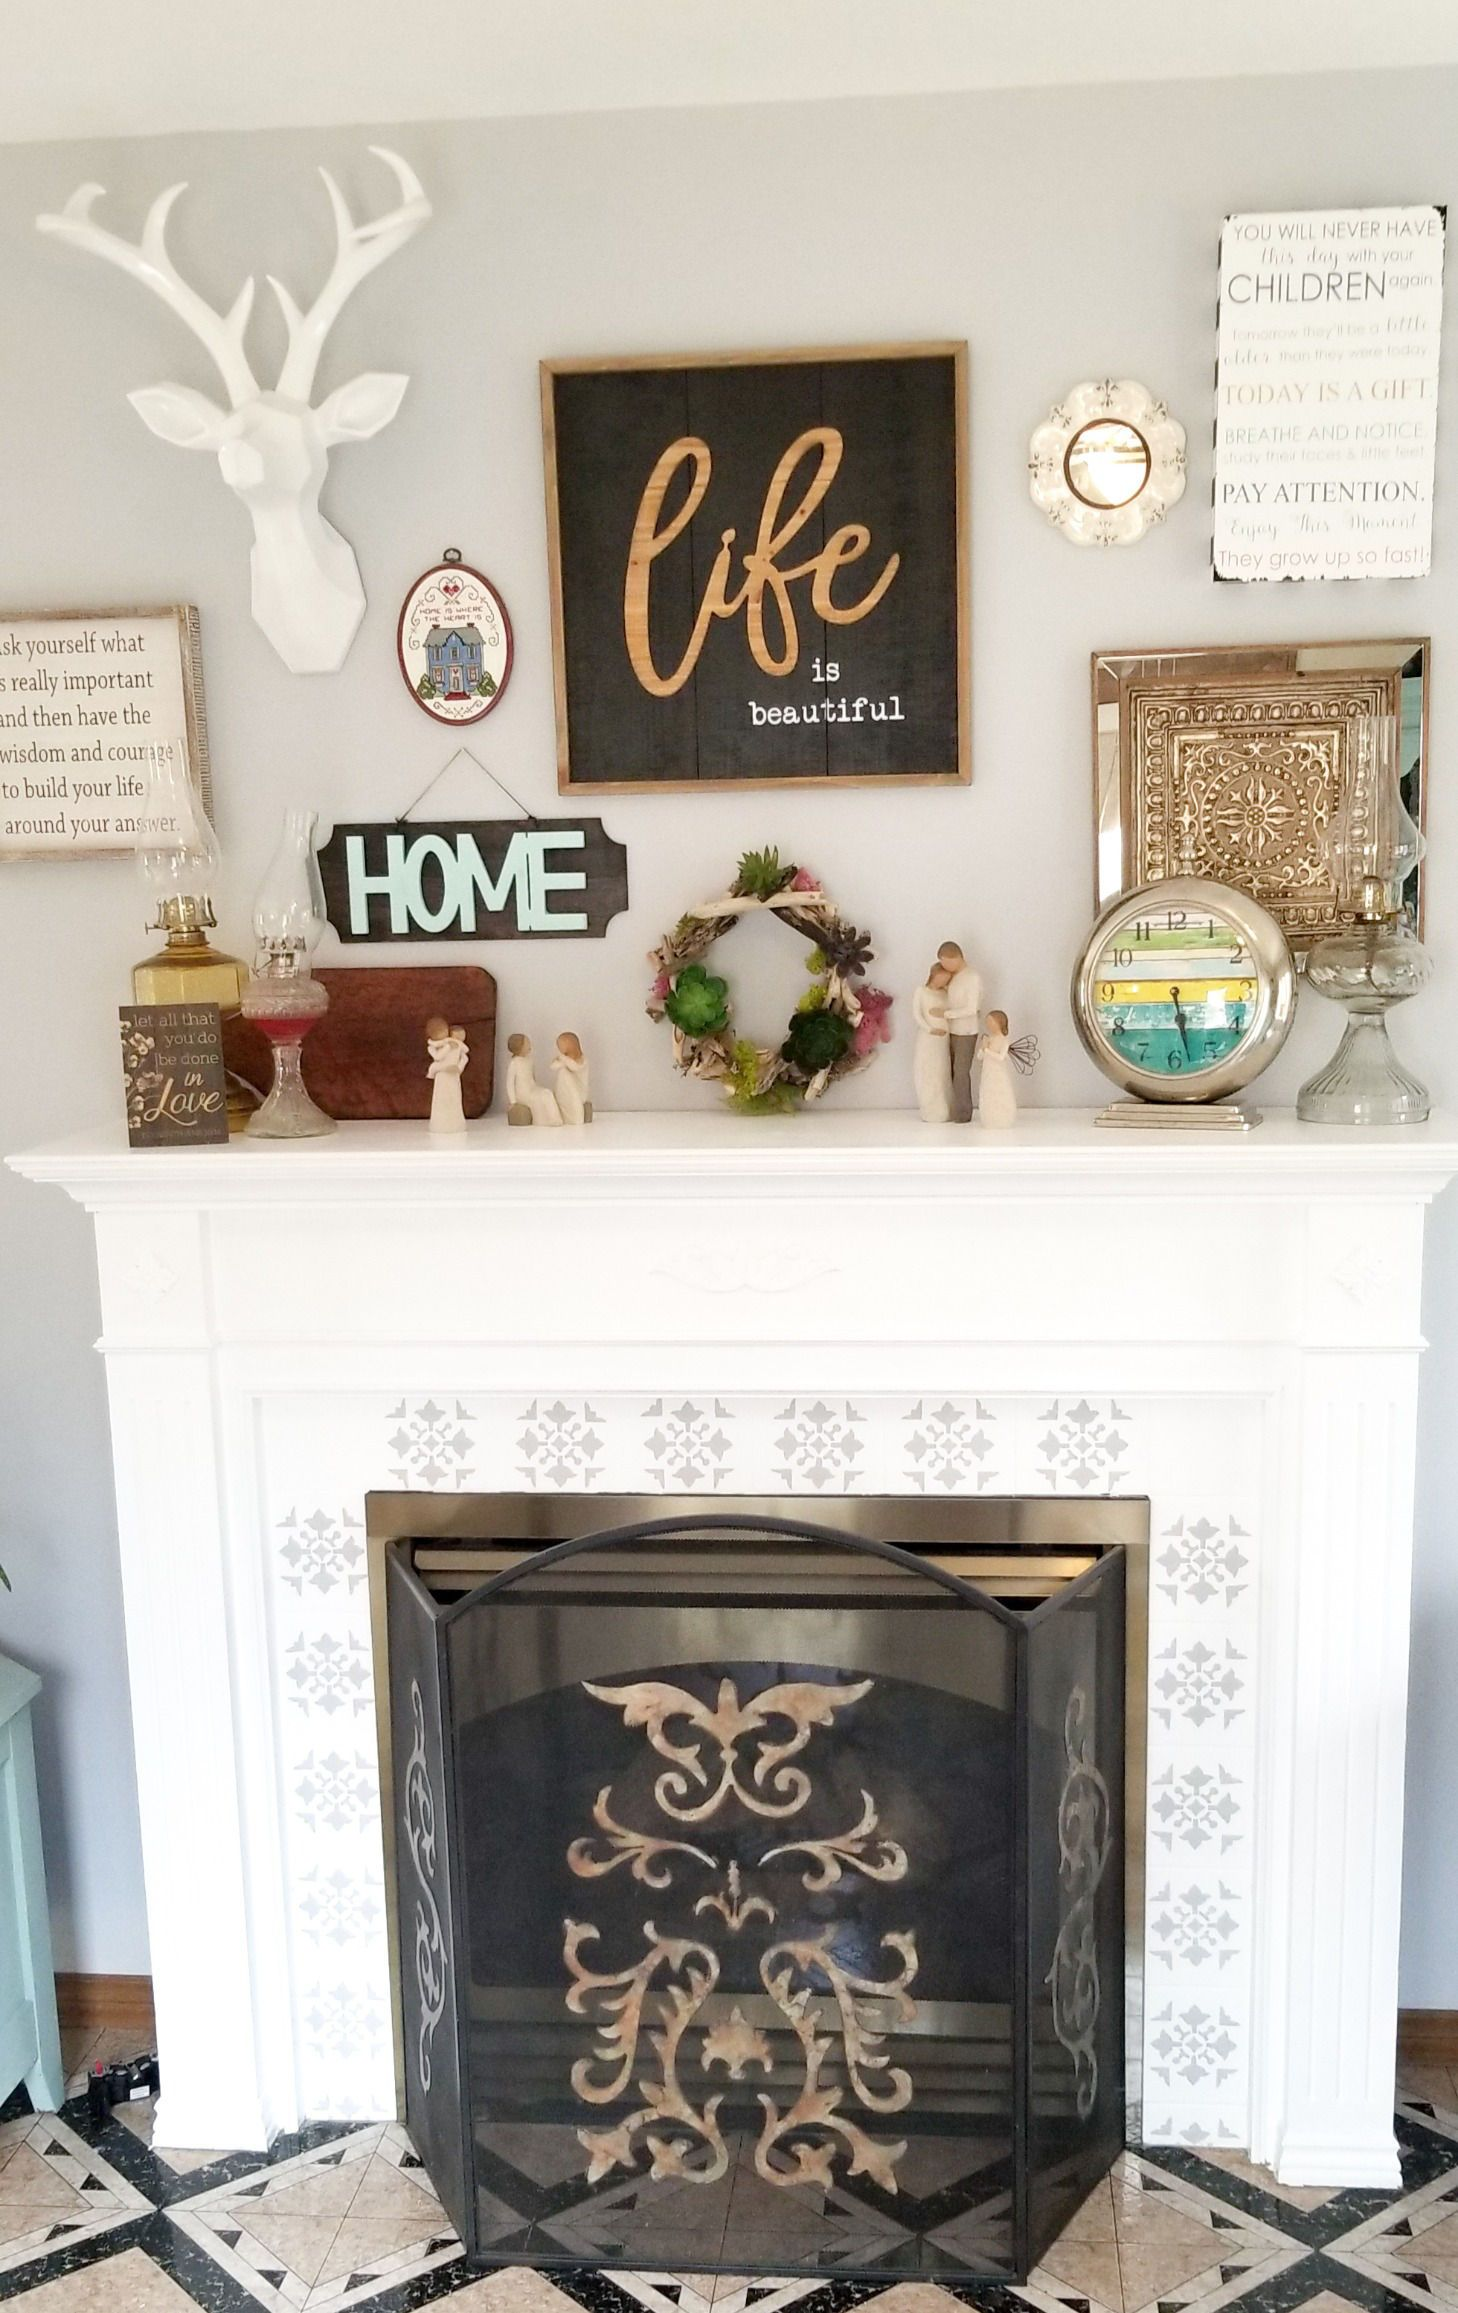 A fireplace surround makeover on a budget with stencils